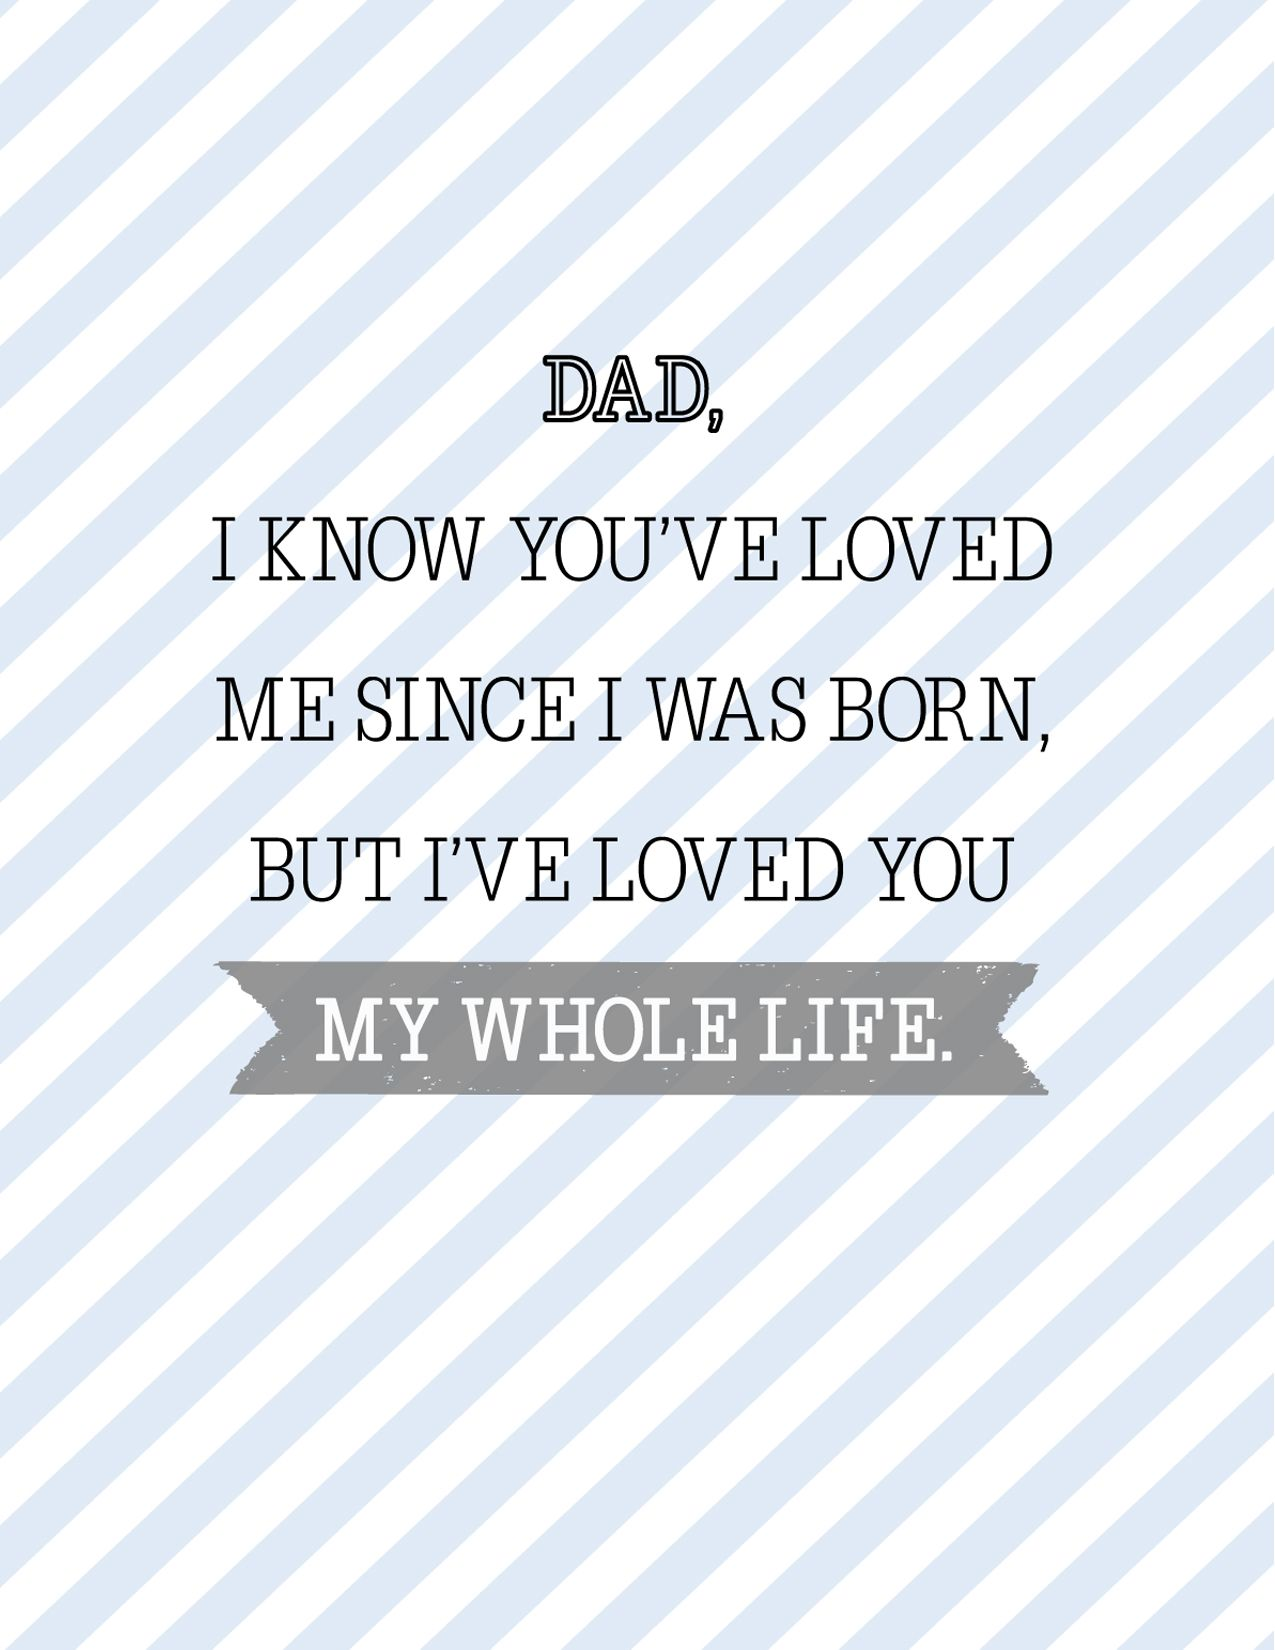 free fathers day cards - loved you dad